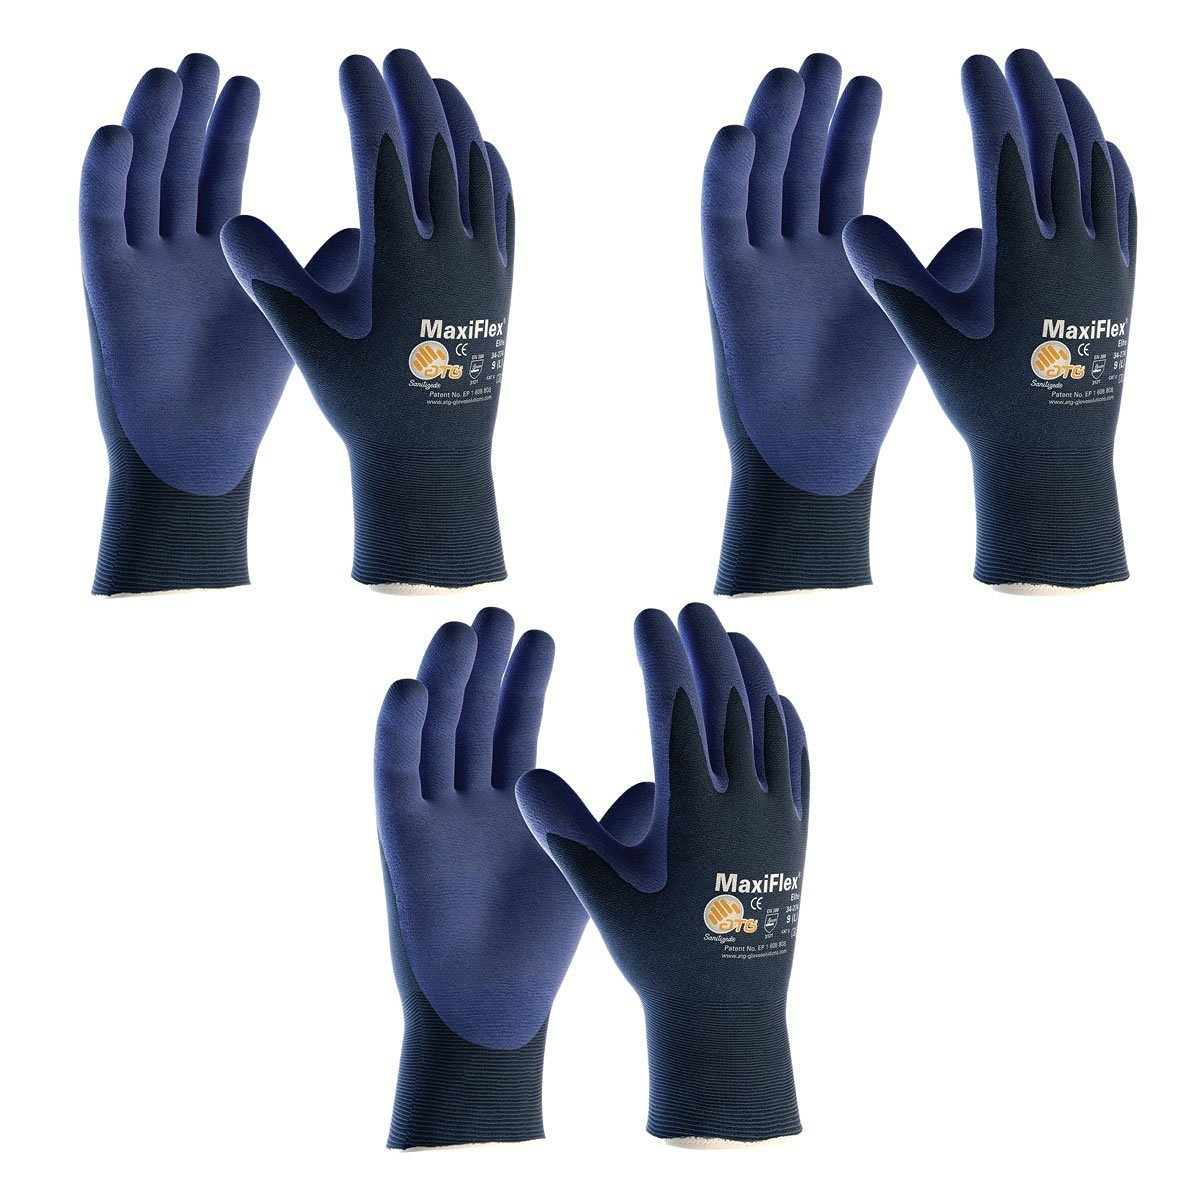 PIP Elite MaxiFlex 34-274 Ultra Light Weight Nitrile Coated Grip Glove X-Large 12 Pair